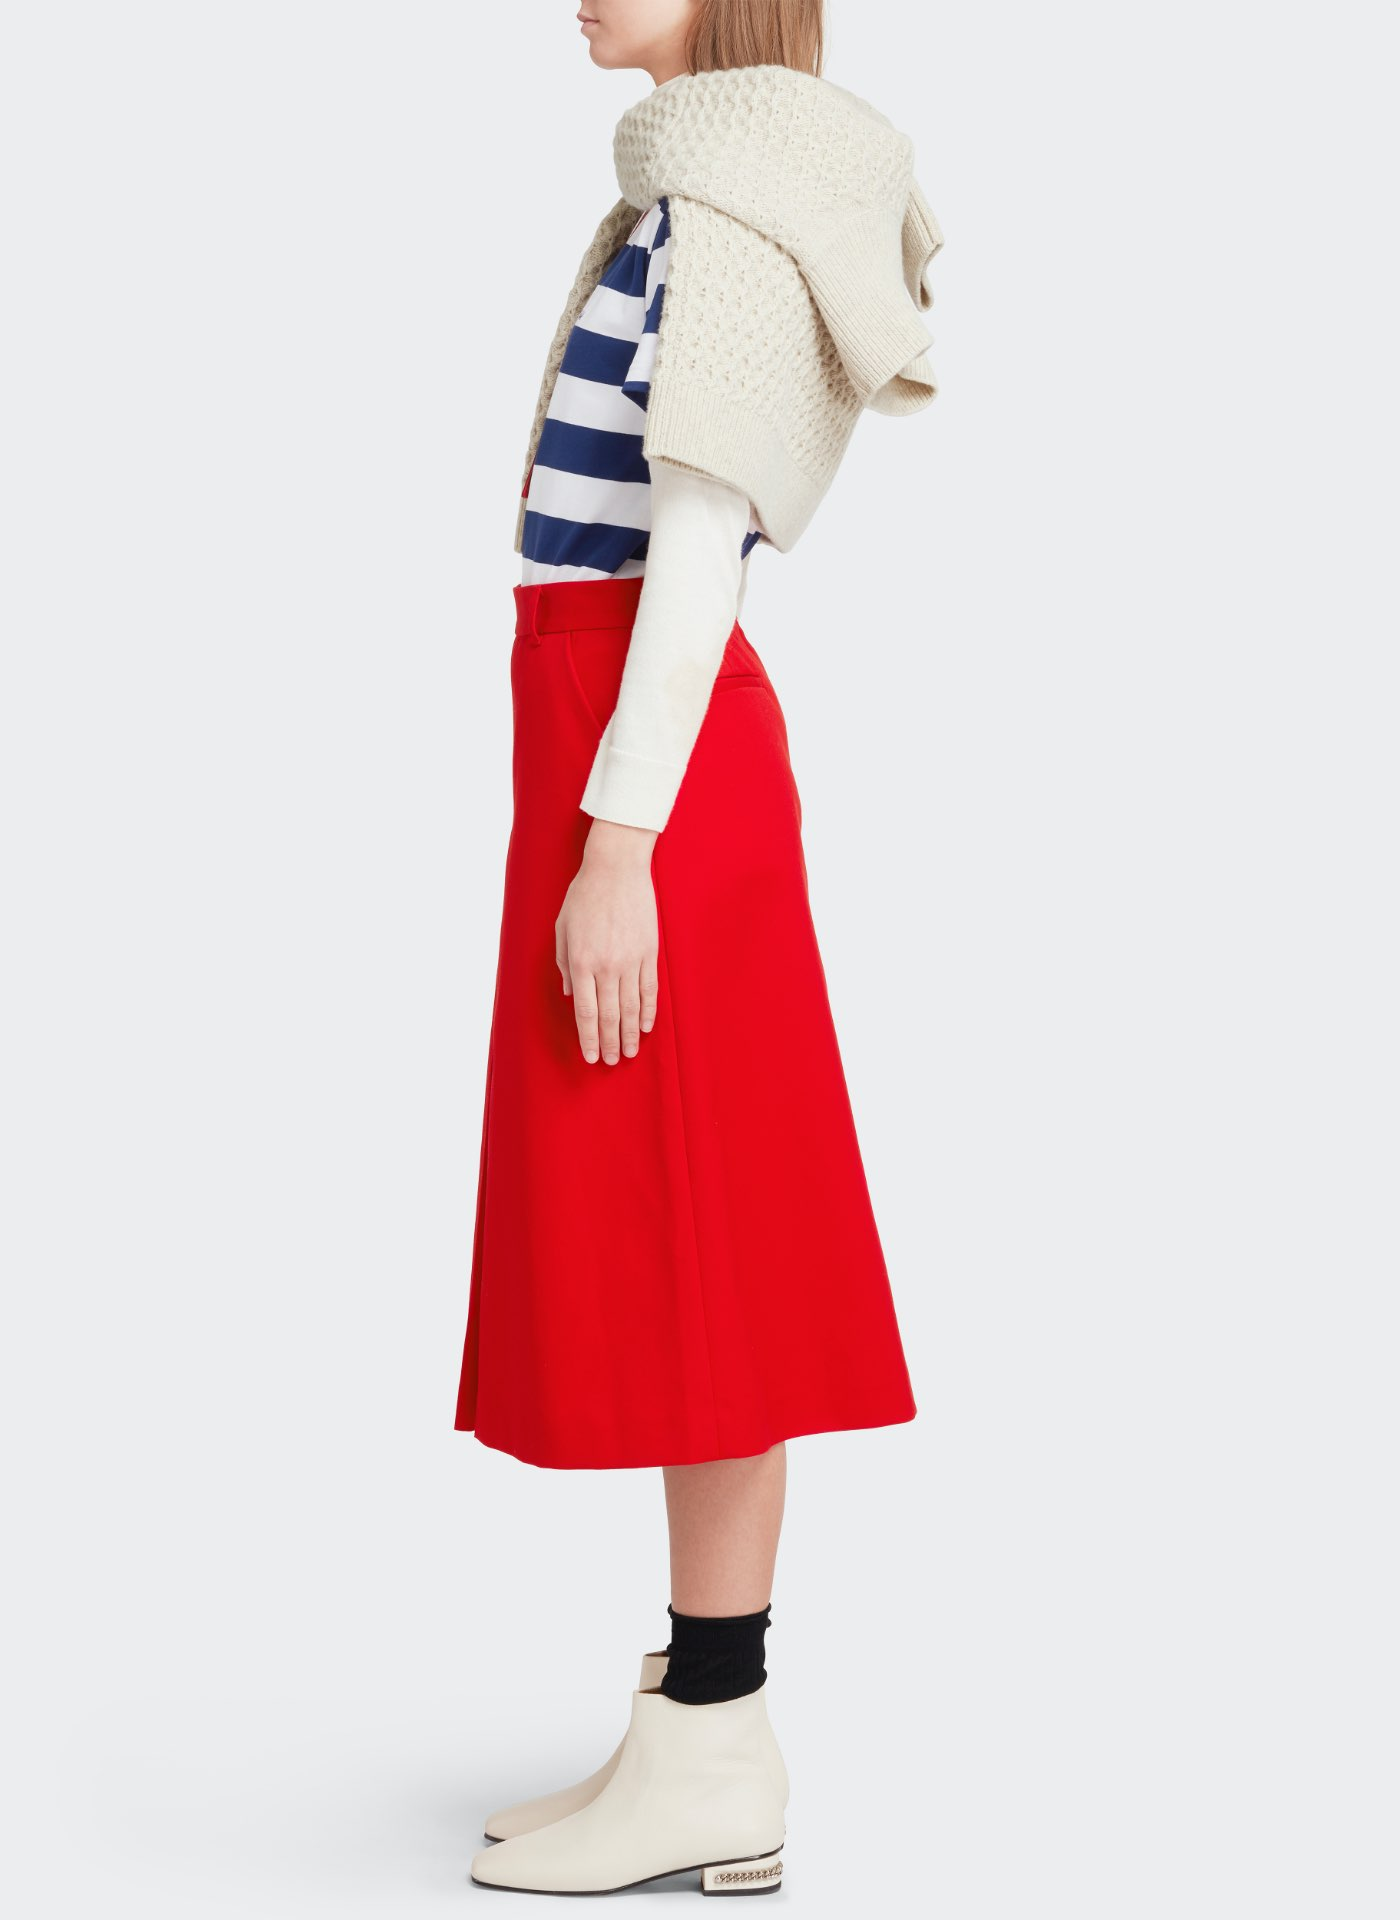 J&M red skirt, Navy and white striped top and white shoes